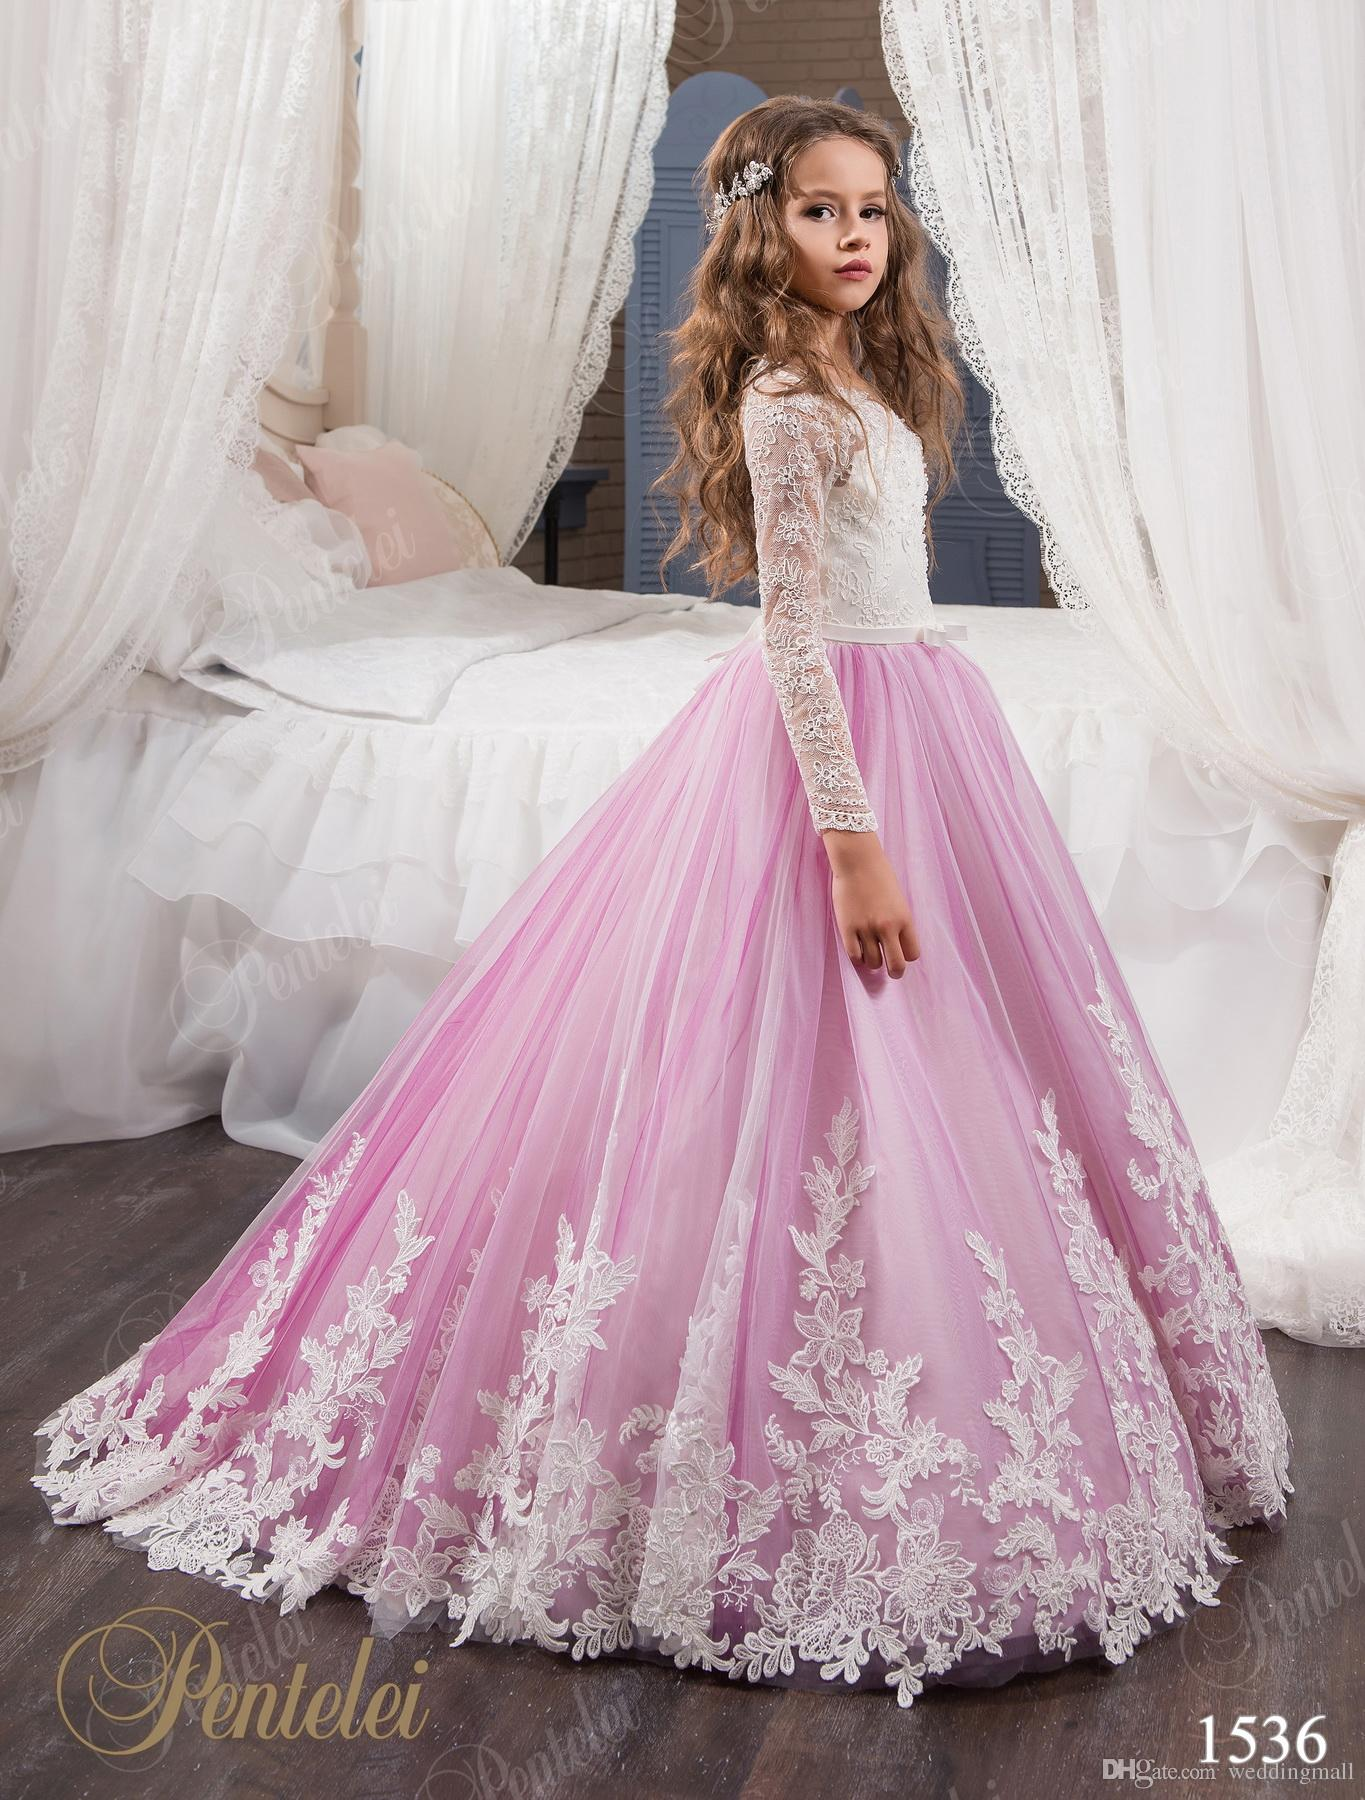 Vintage princess floral lace arabic 2017 flower girl dresses long vintage princess floral lace arabic 2017 flower girl dresses long sleeves tulle child dresses beautiful flower junglespirit Gallery